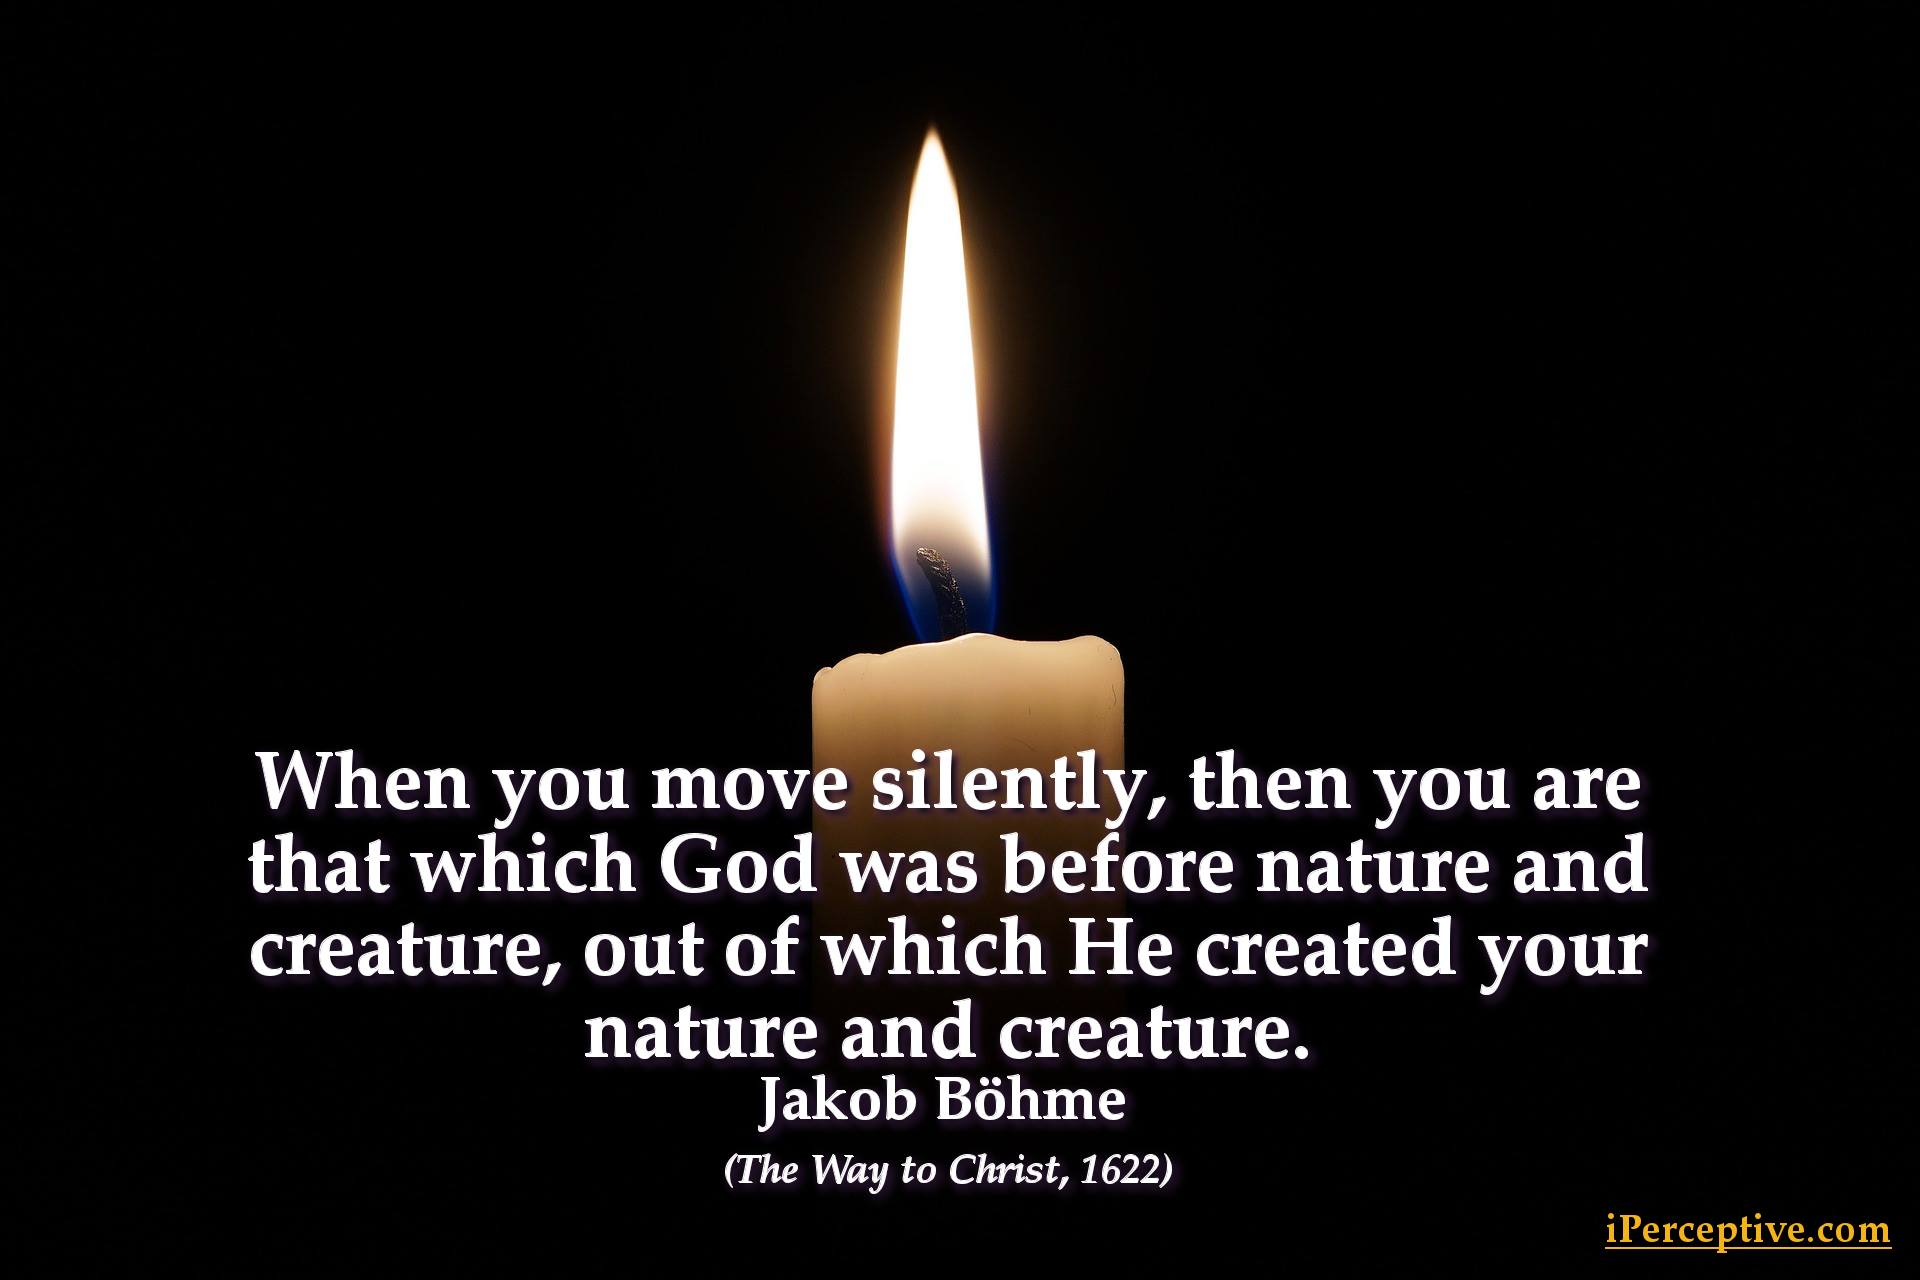 Jakob Böhme Spiritual Quote: When you move silently, then you are that which God...